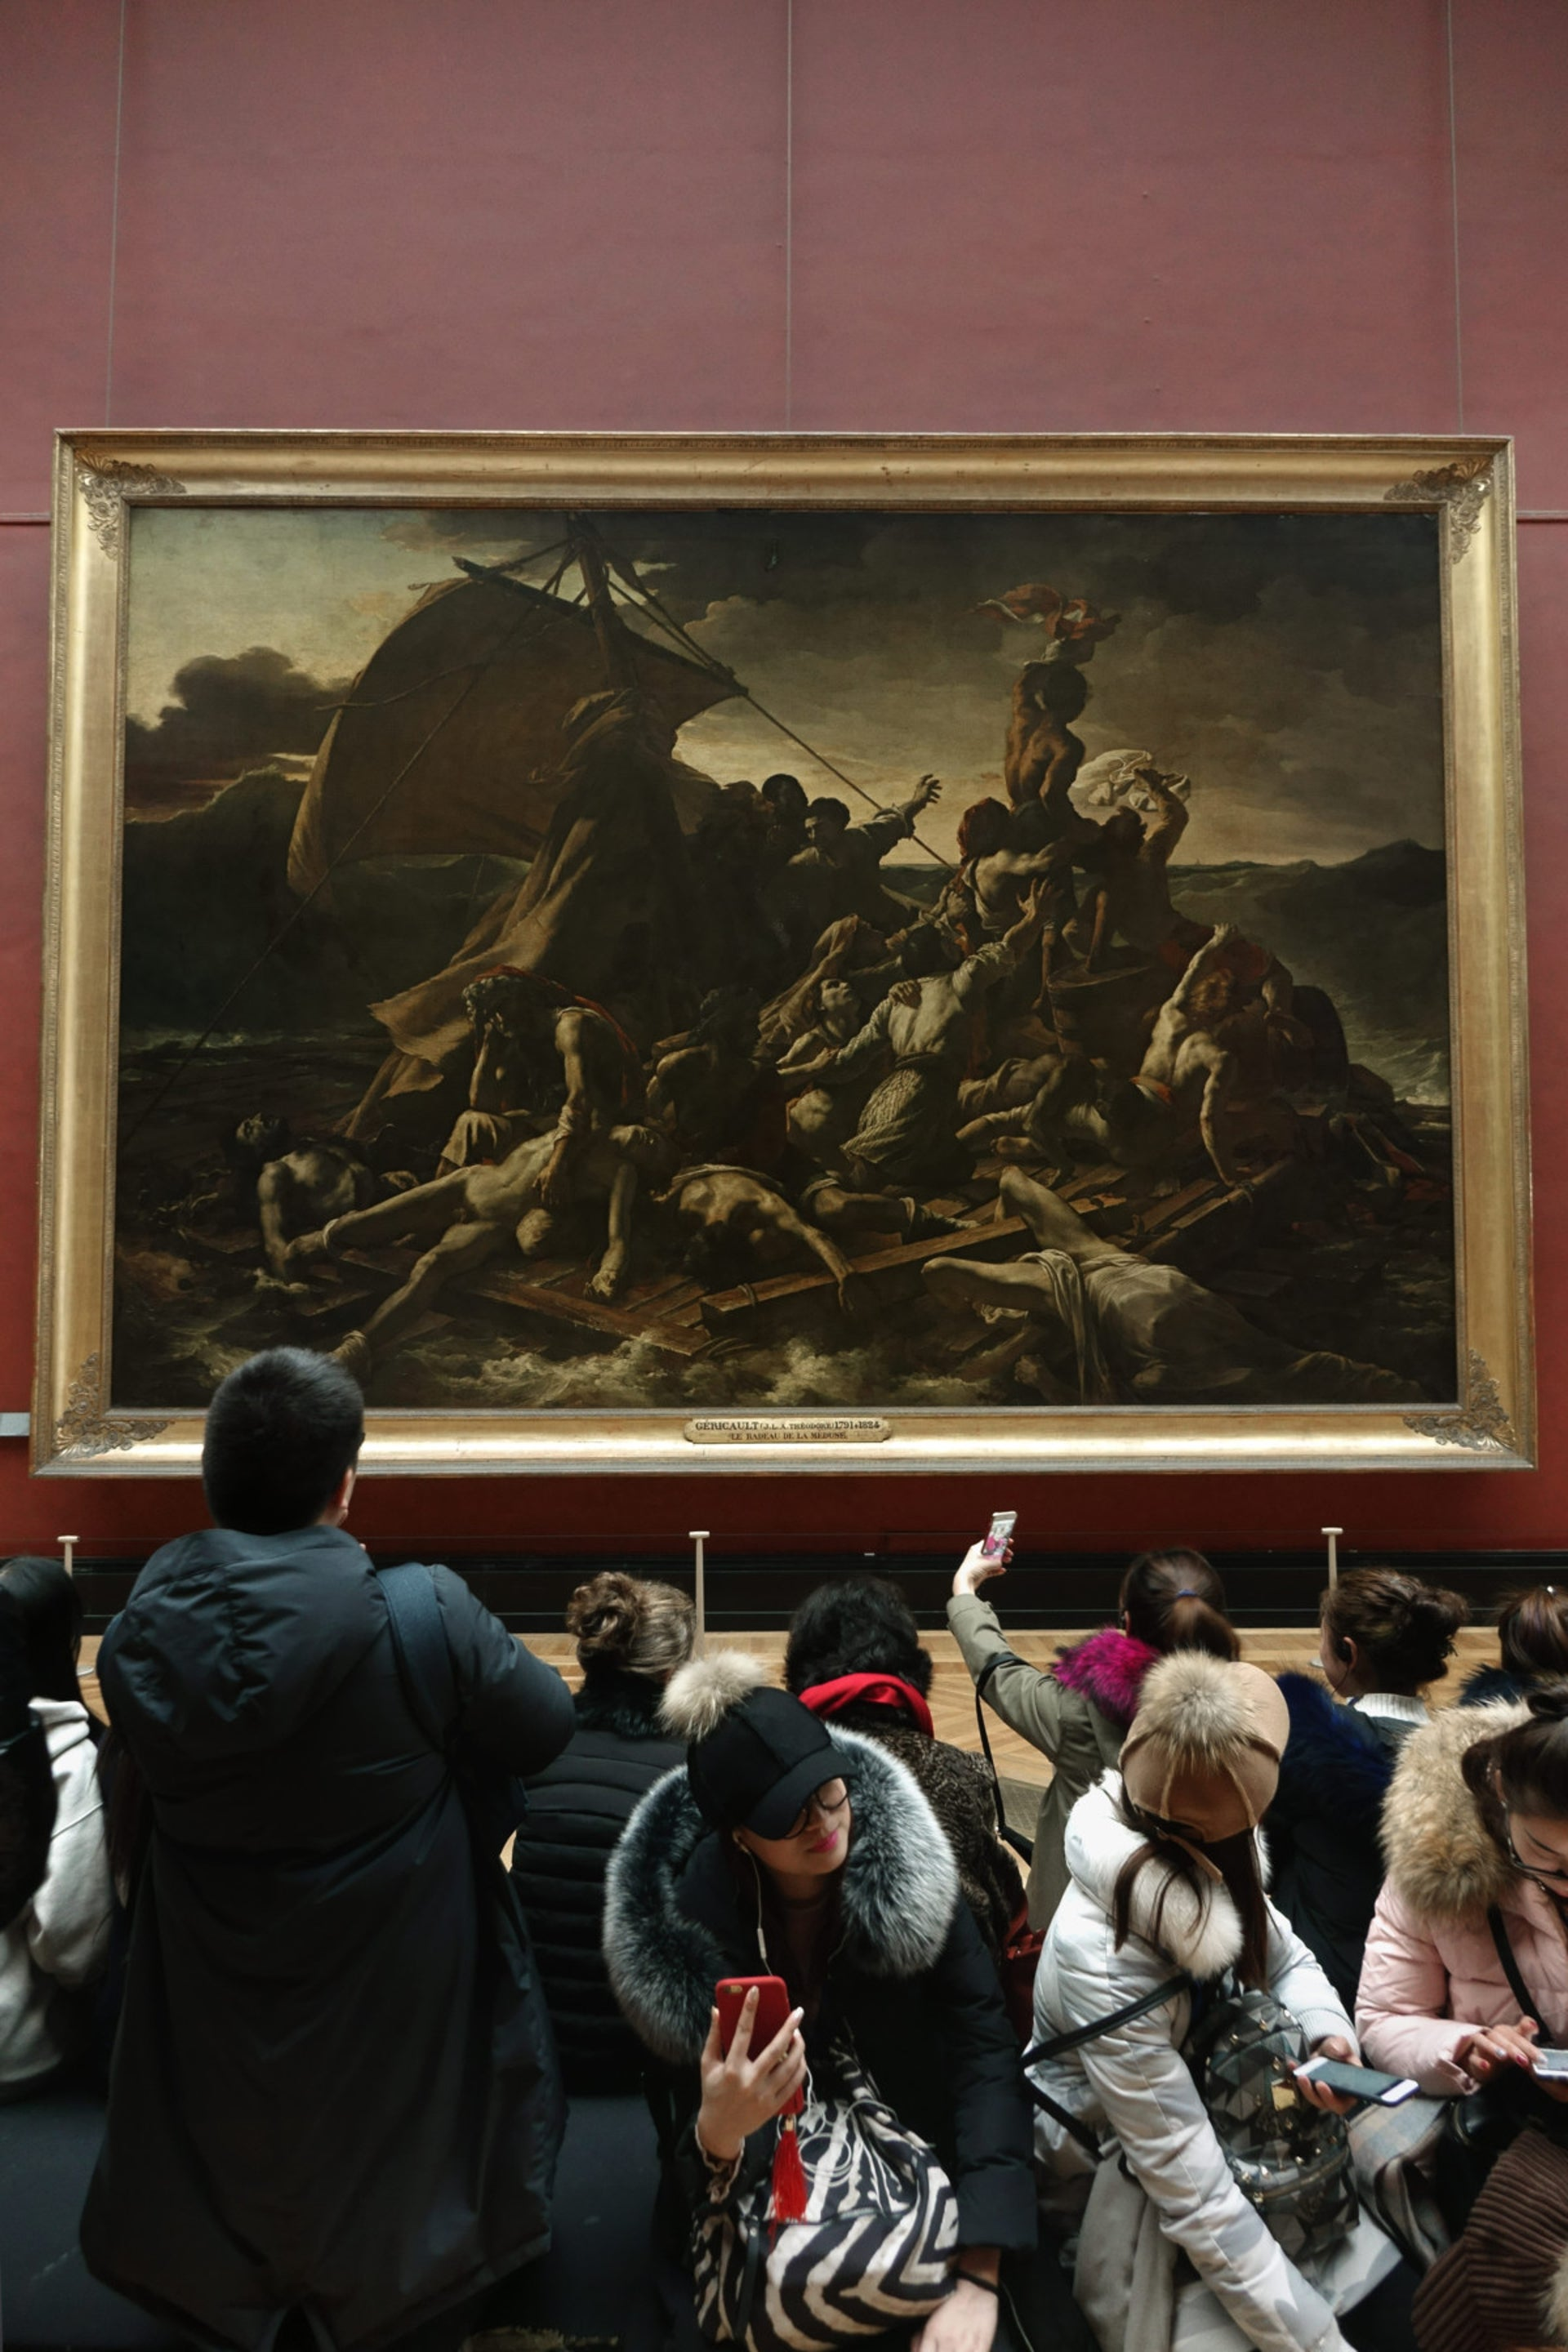 Visitors at the Louvre in Paris look at 'The Raft of the Medusa' by French Romantic painter and lithographer Théodore Géricault.